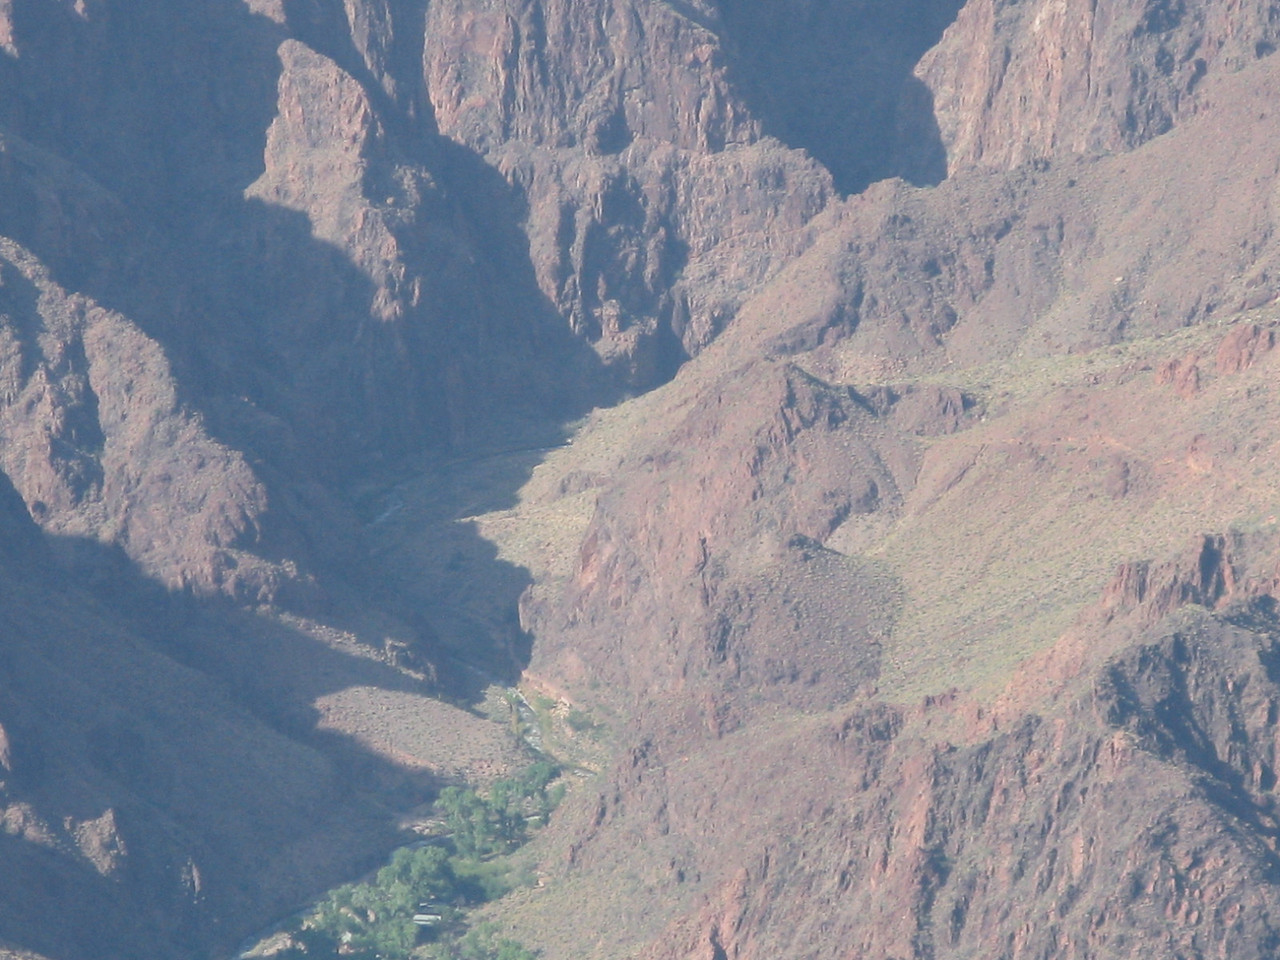 In this telephoto image, Phantom Ranch and Bright Angel Creek can be seen on the north side of the Colorado River.